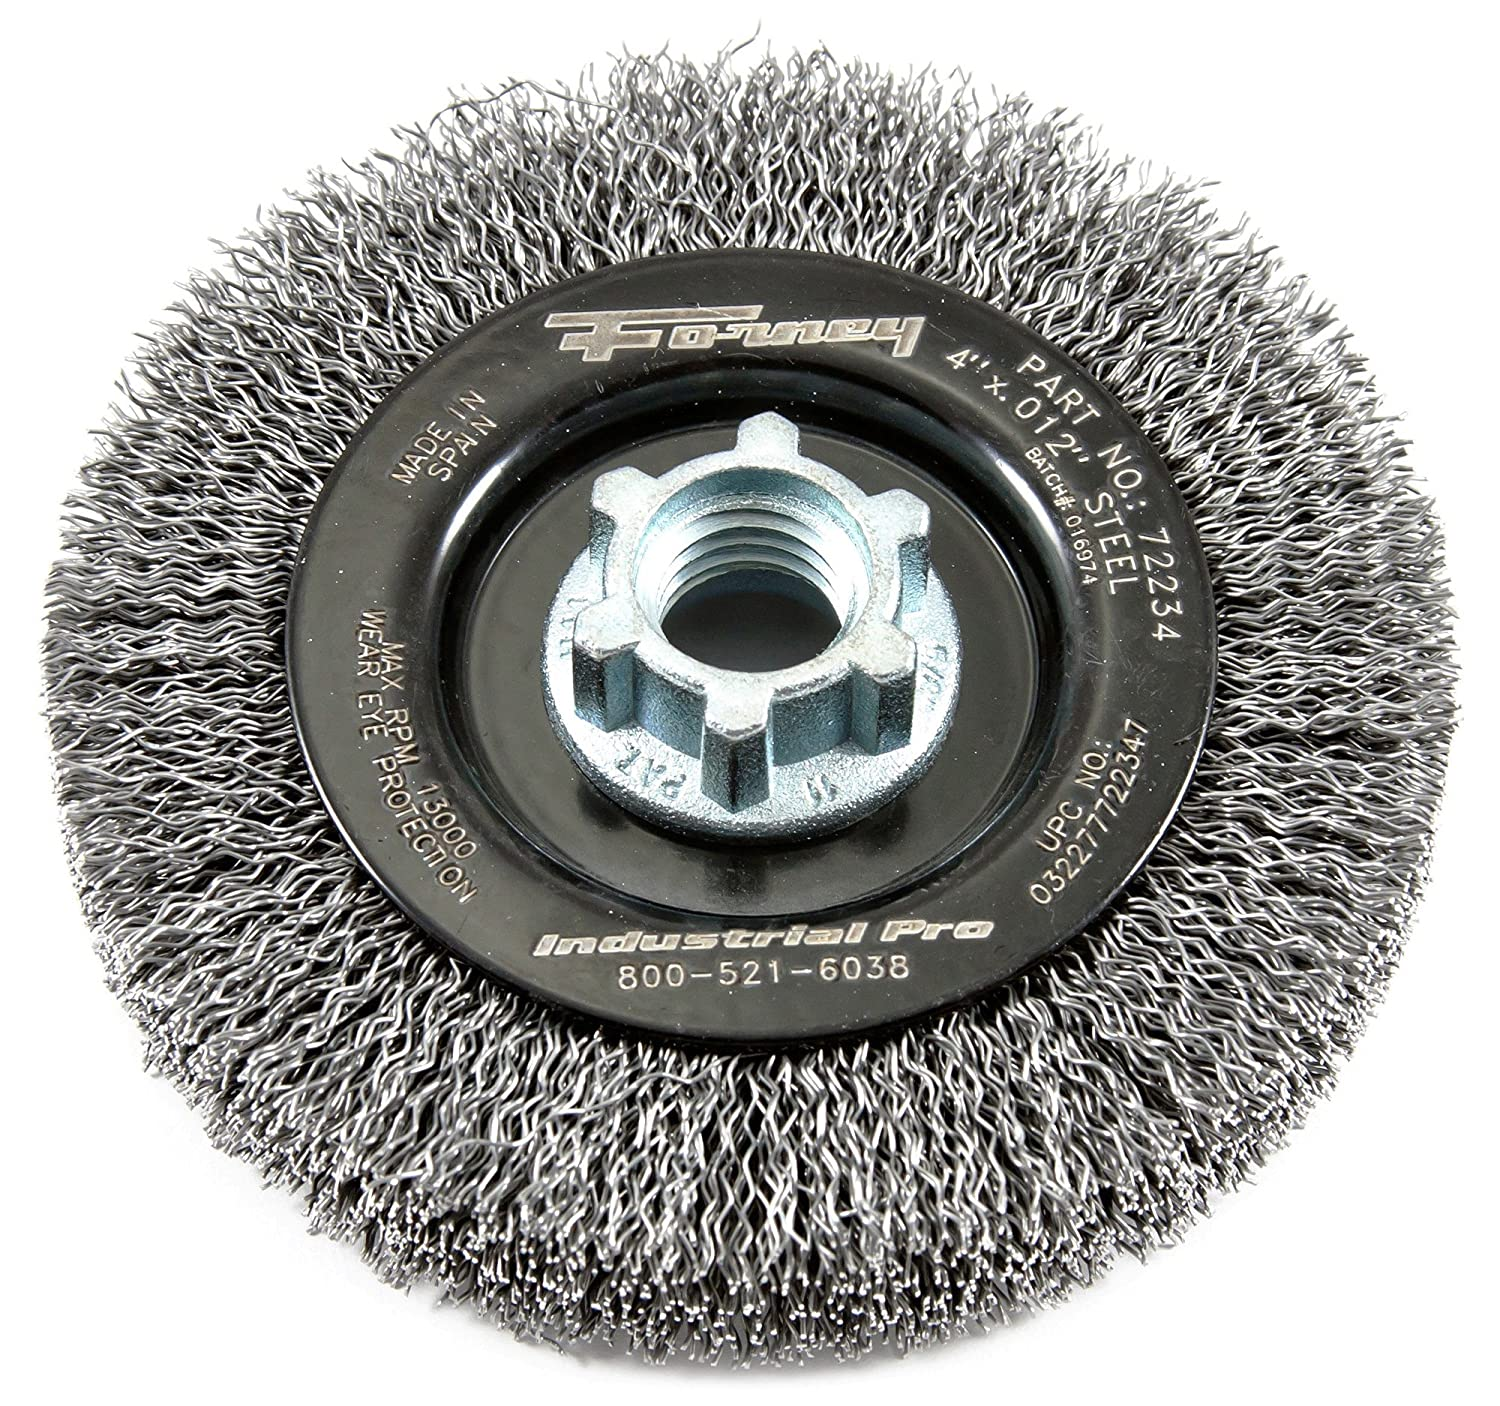 4-Inch-by-2.0-Inch Forney 72234 Wire Wheel Brush Industrial Pro Crimped with Dual Arbor 5//8-Inch-11 and M14